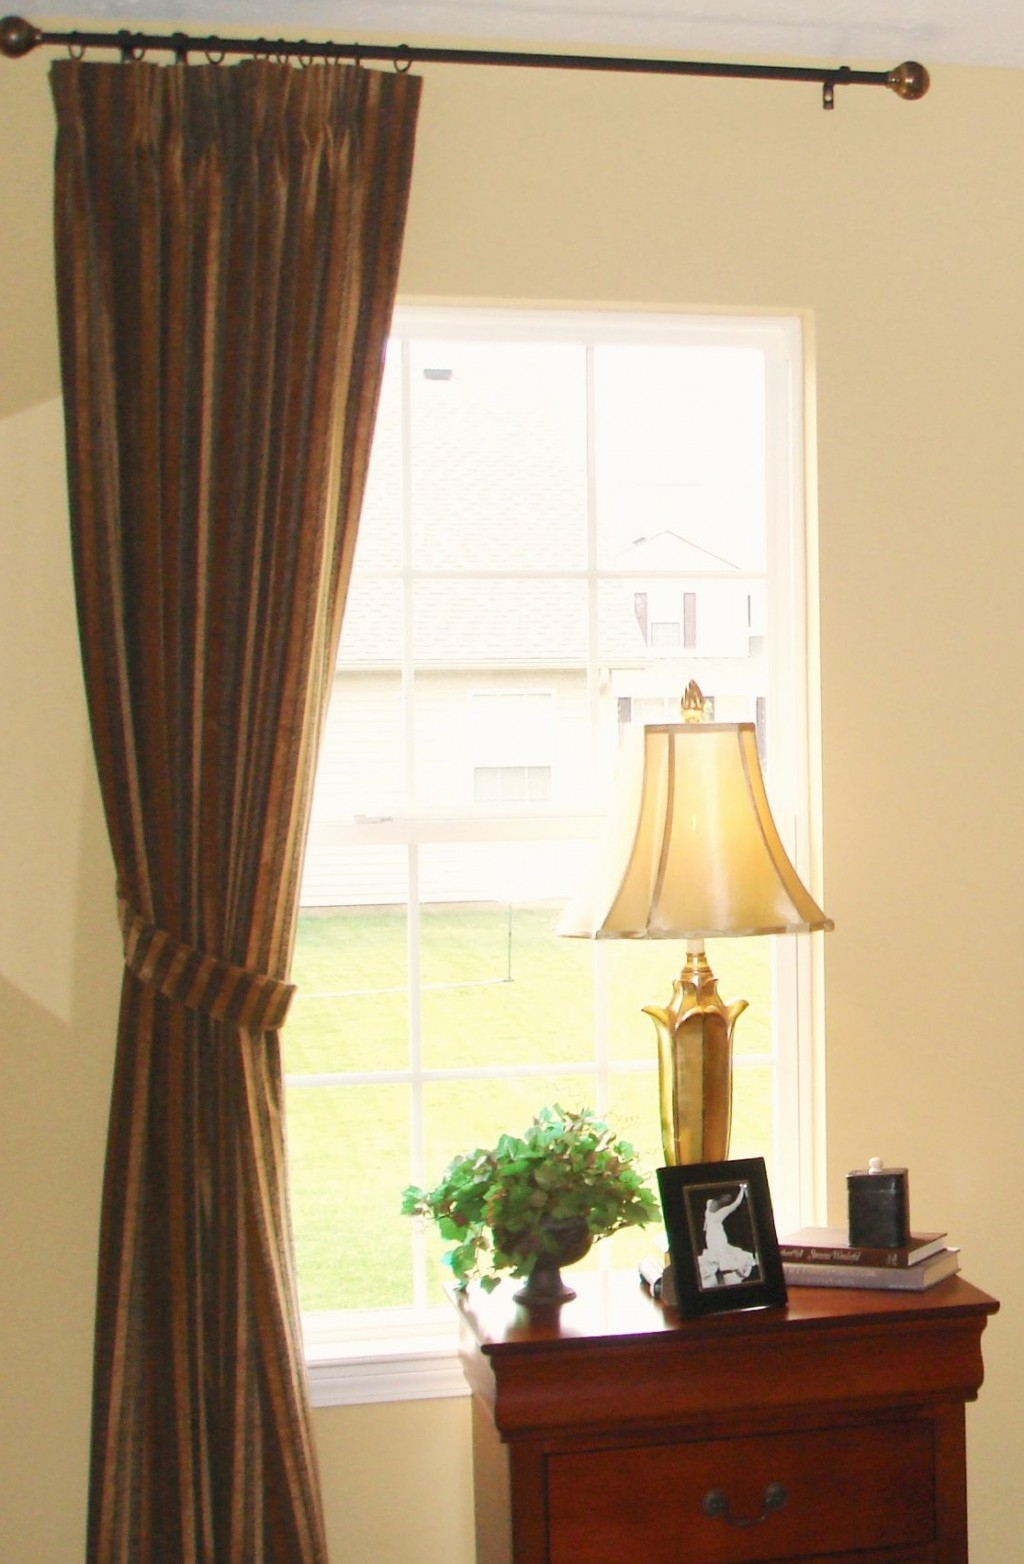 Hanging Curtains From Ceiling Aka Build A Diy Curtain Rod In Throughout Hanging Curtains (View 11 of 25)